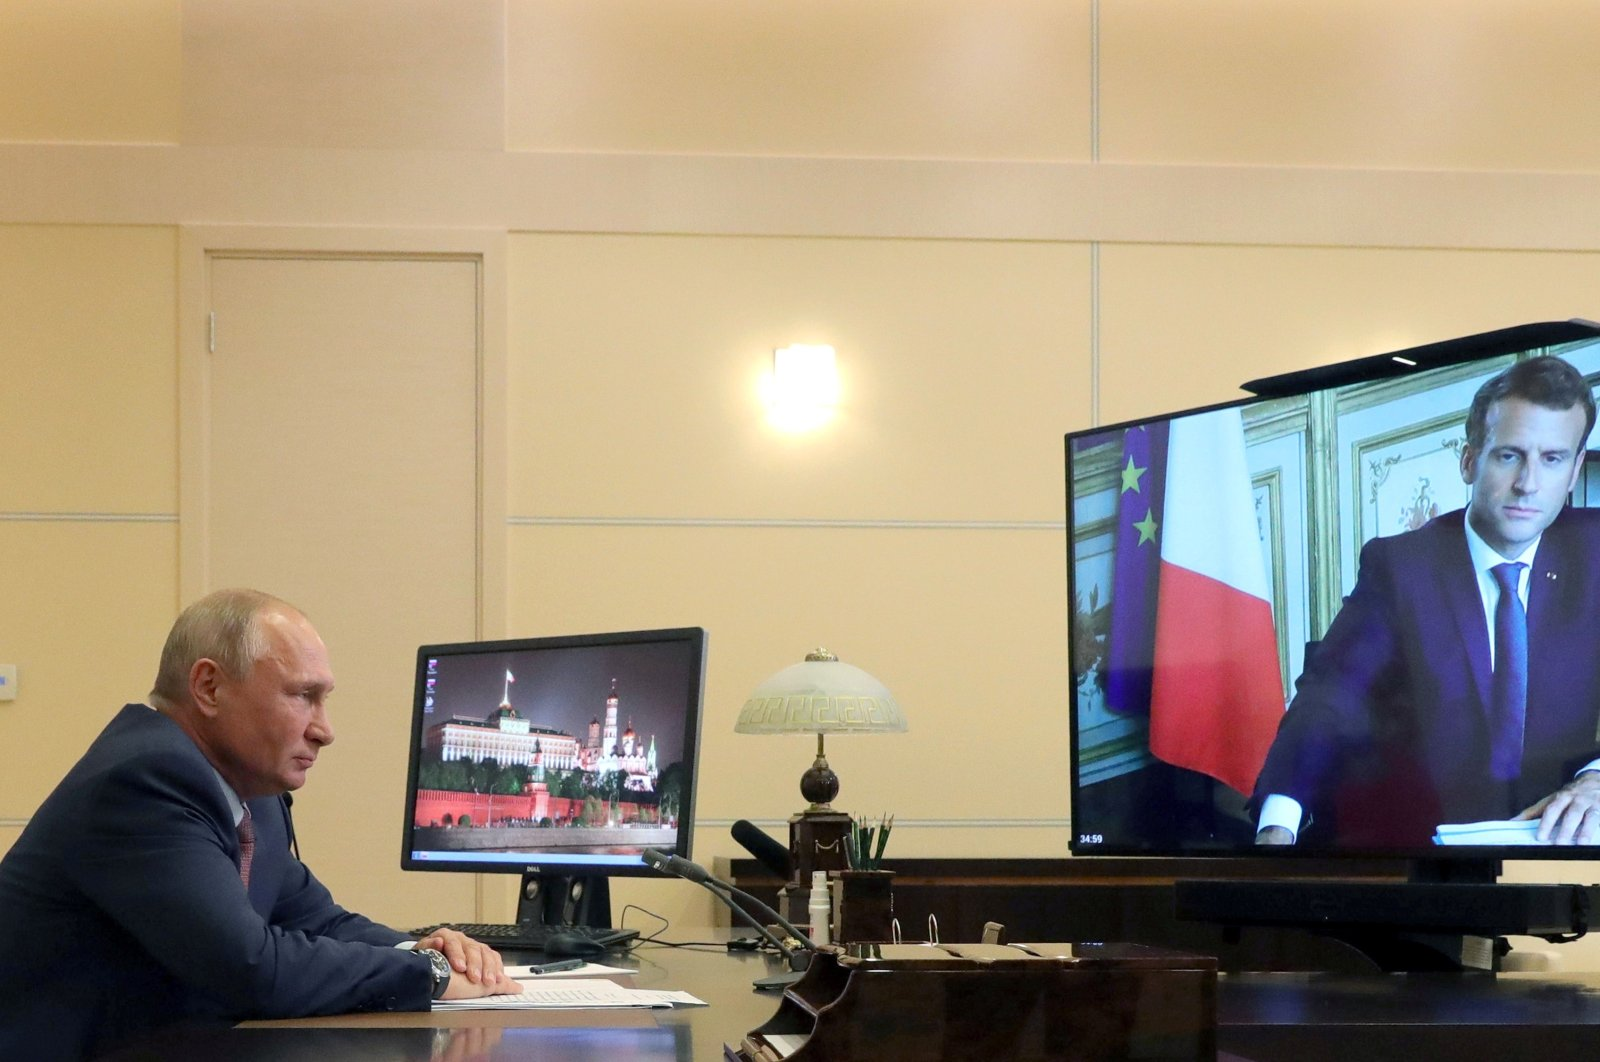 Russian President Vladimir Putin speaks with his French counterpart Emmanuel Macron during a video conference call at the Novo-Ogaryovo state residence outside Moscow, Russia, June 26, 2020. (Reuters Photo)